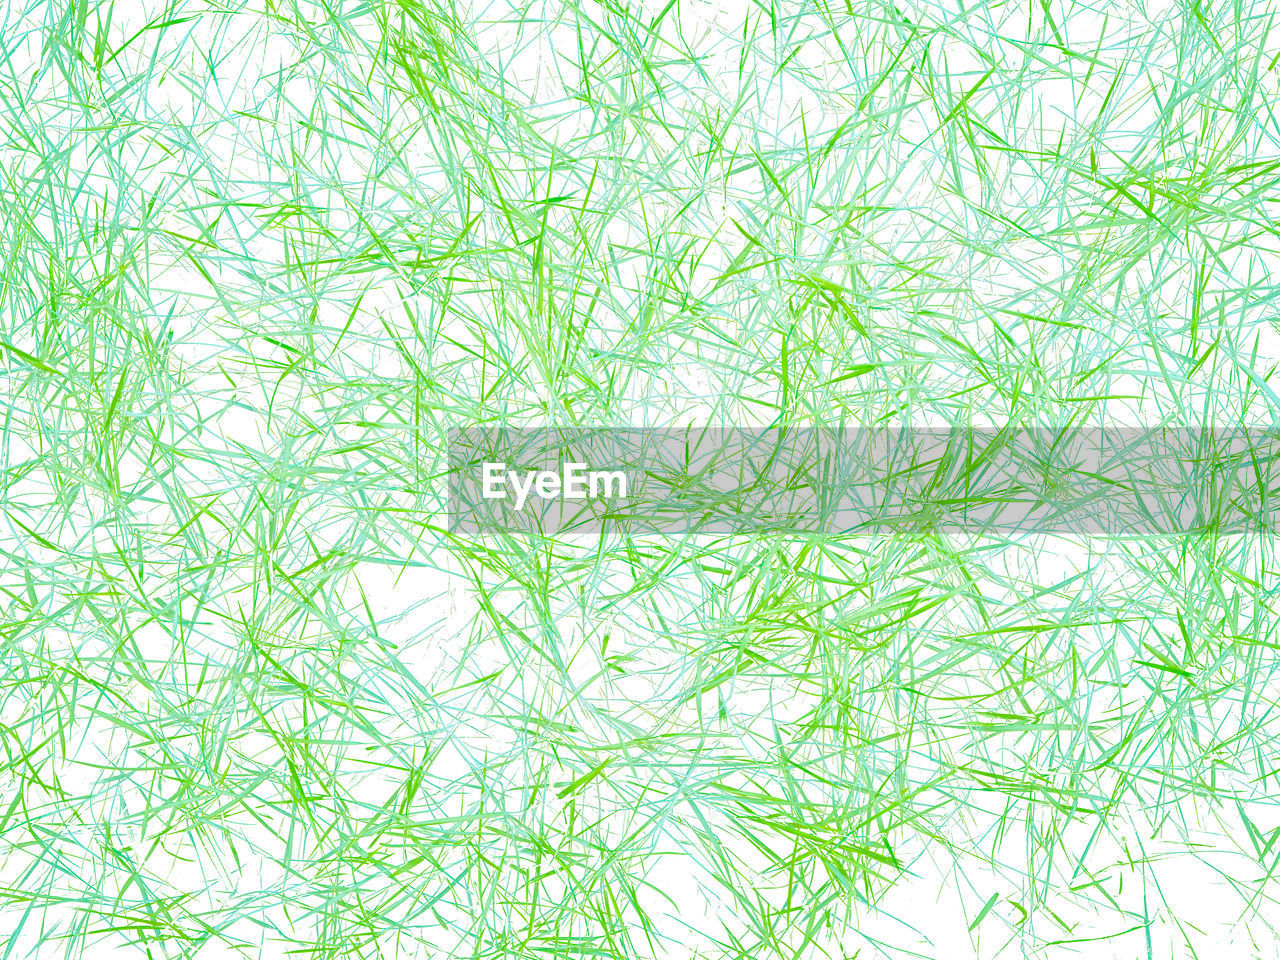 backgrounds, green color, no people, full frame, abstract, pattern, extreme close-up, textured, white color, close-up, macro, nature, food and drink, food, textured effect, paper, environmental issues, beauty, abstract backgrounds, outdoors, tangled